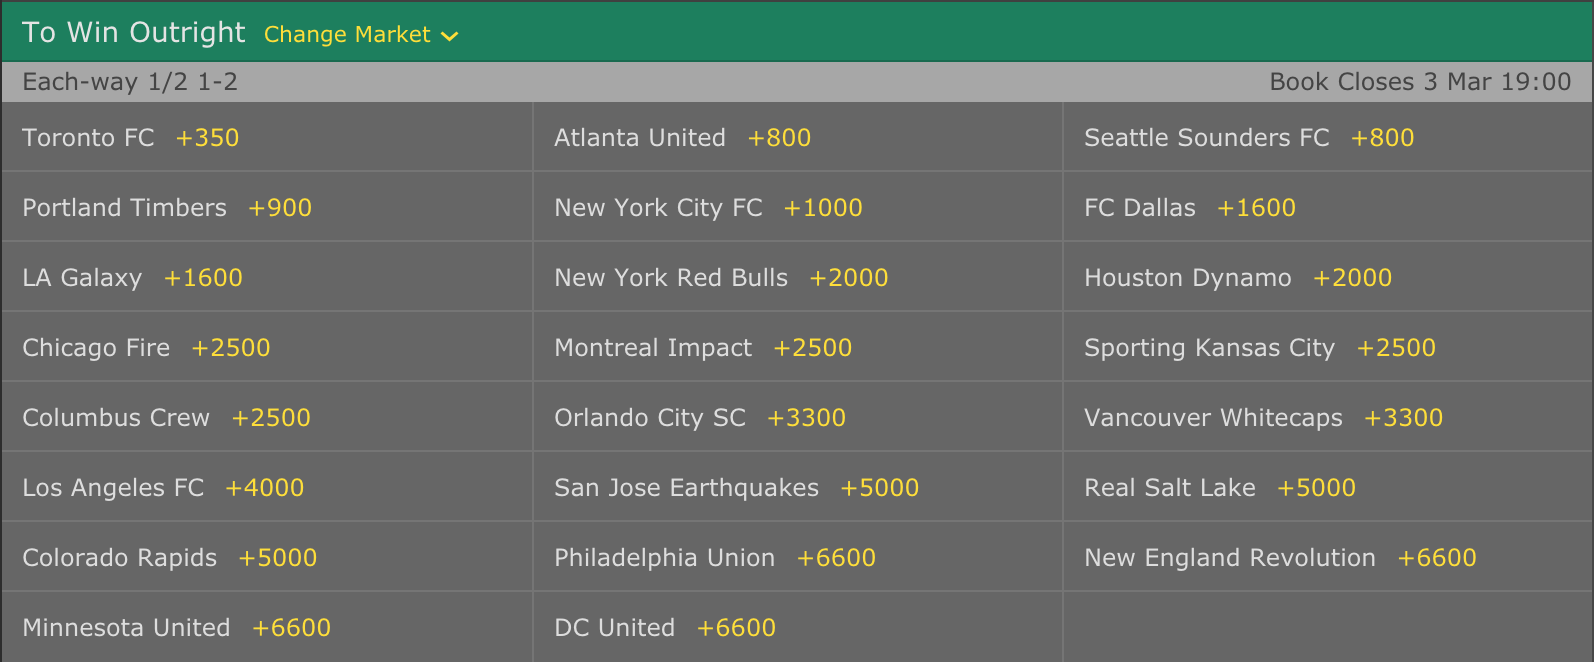 MLS Futures Odds (Bet365) - February 20, 2018